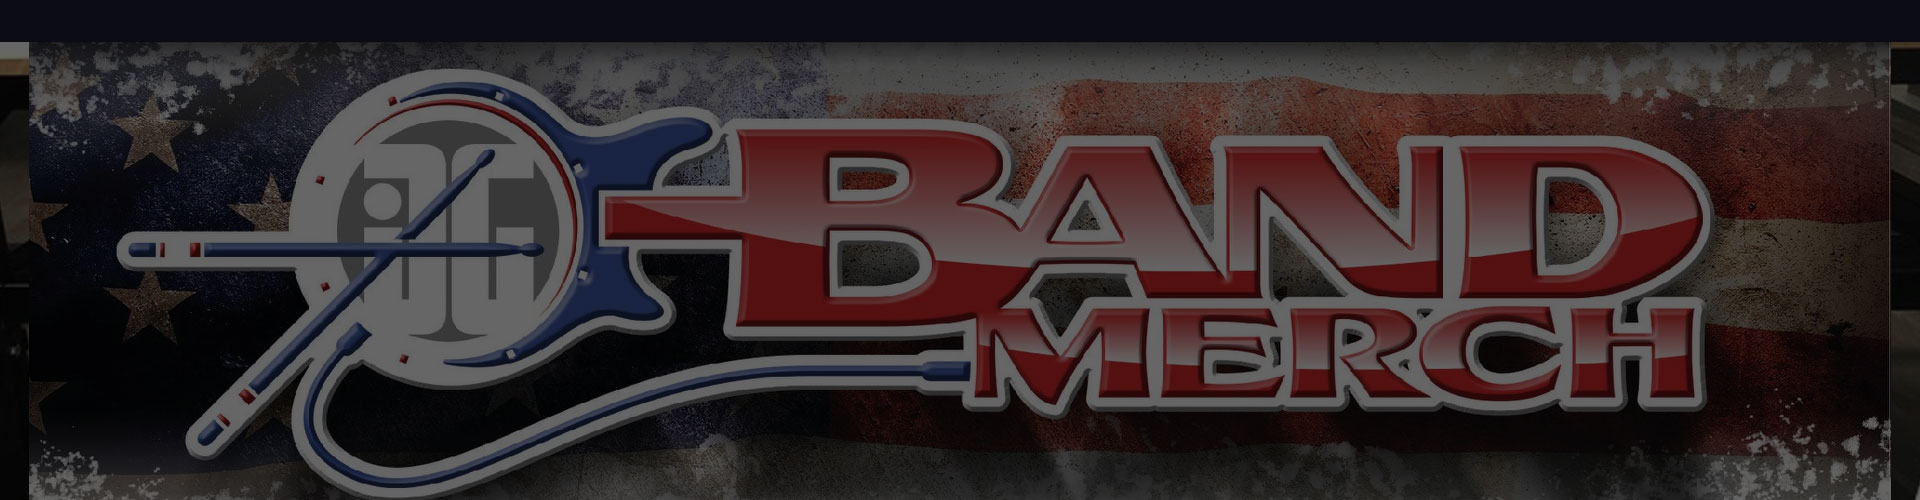 Image Design Group - Band Merchandise, Design Services, Banners, Dimensional Logos, and more